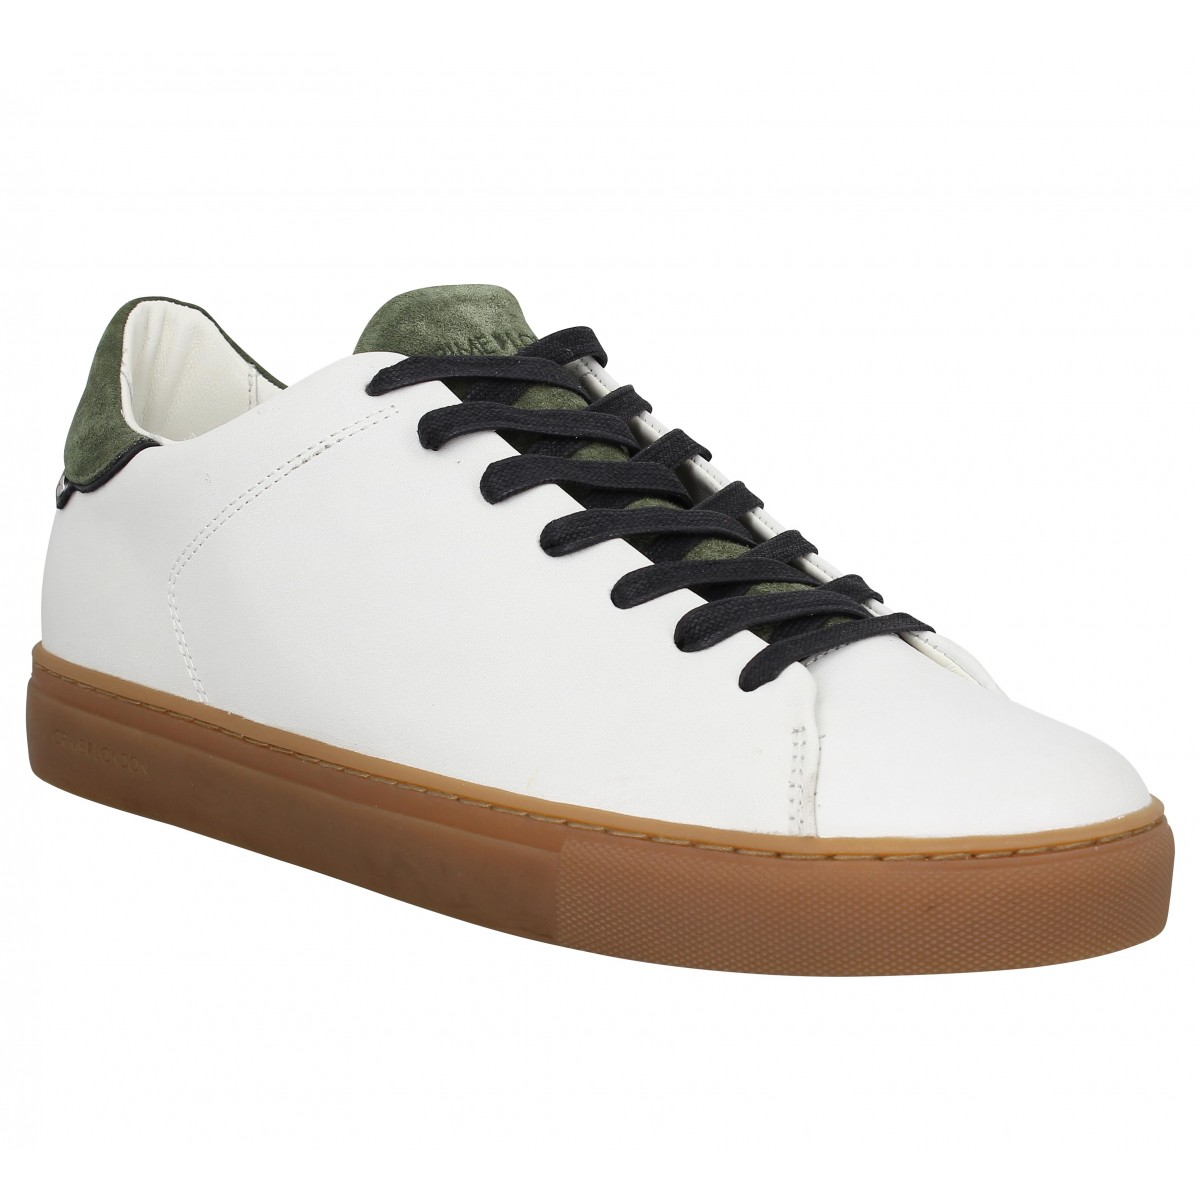 Baskets CRIME 1207 cuir Homme Blanc